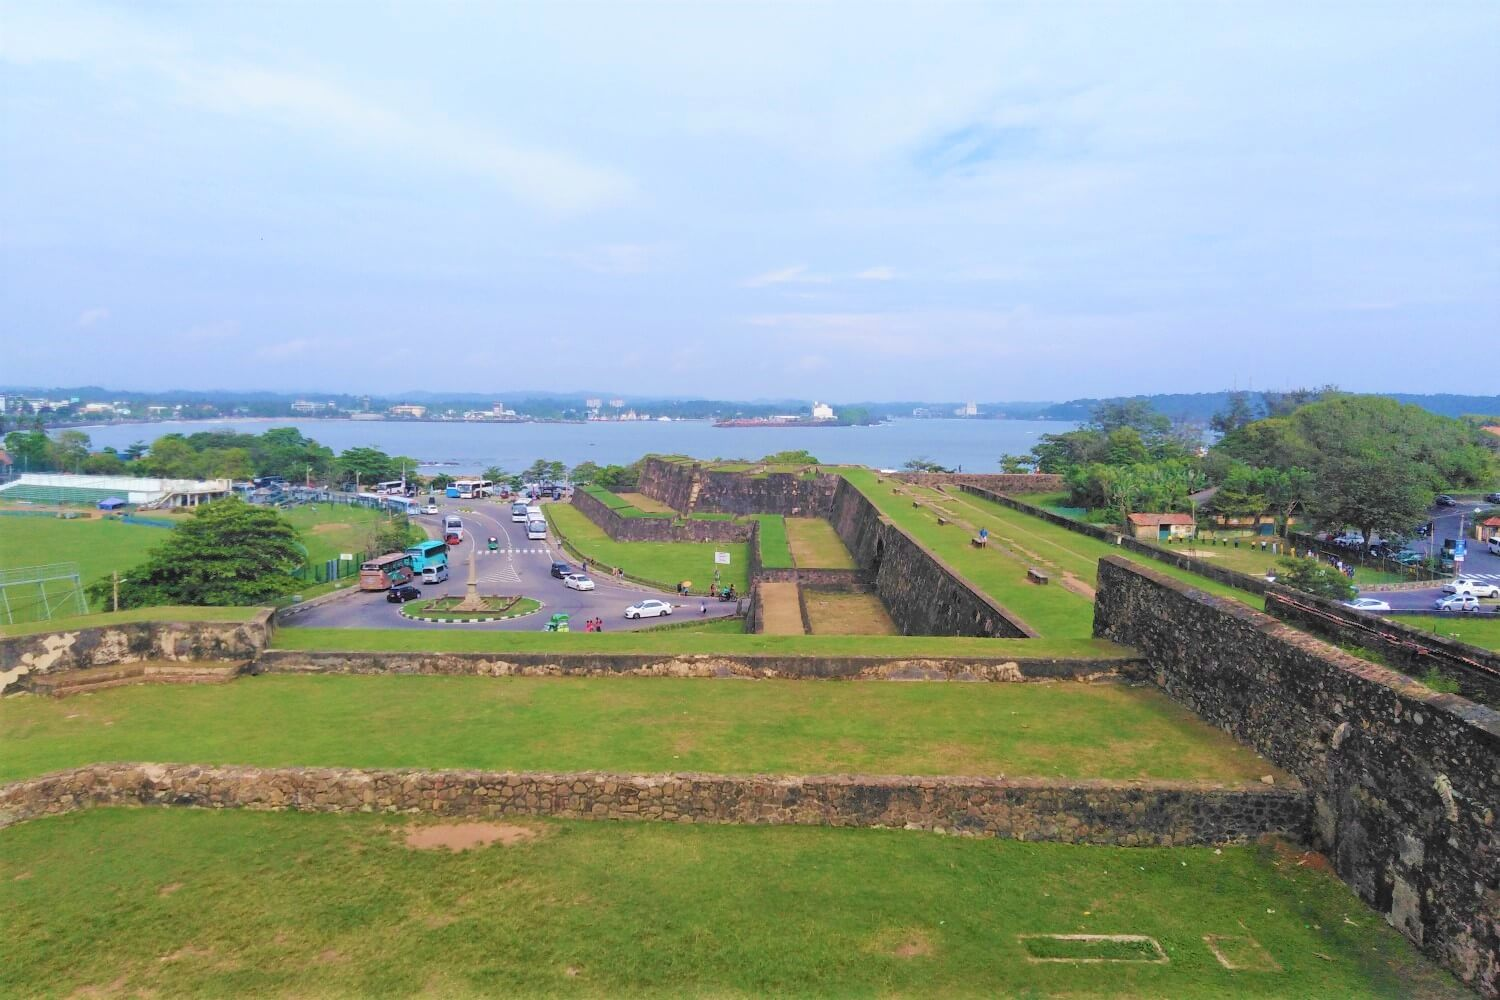 The foundations of the strong Dutch Fort